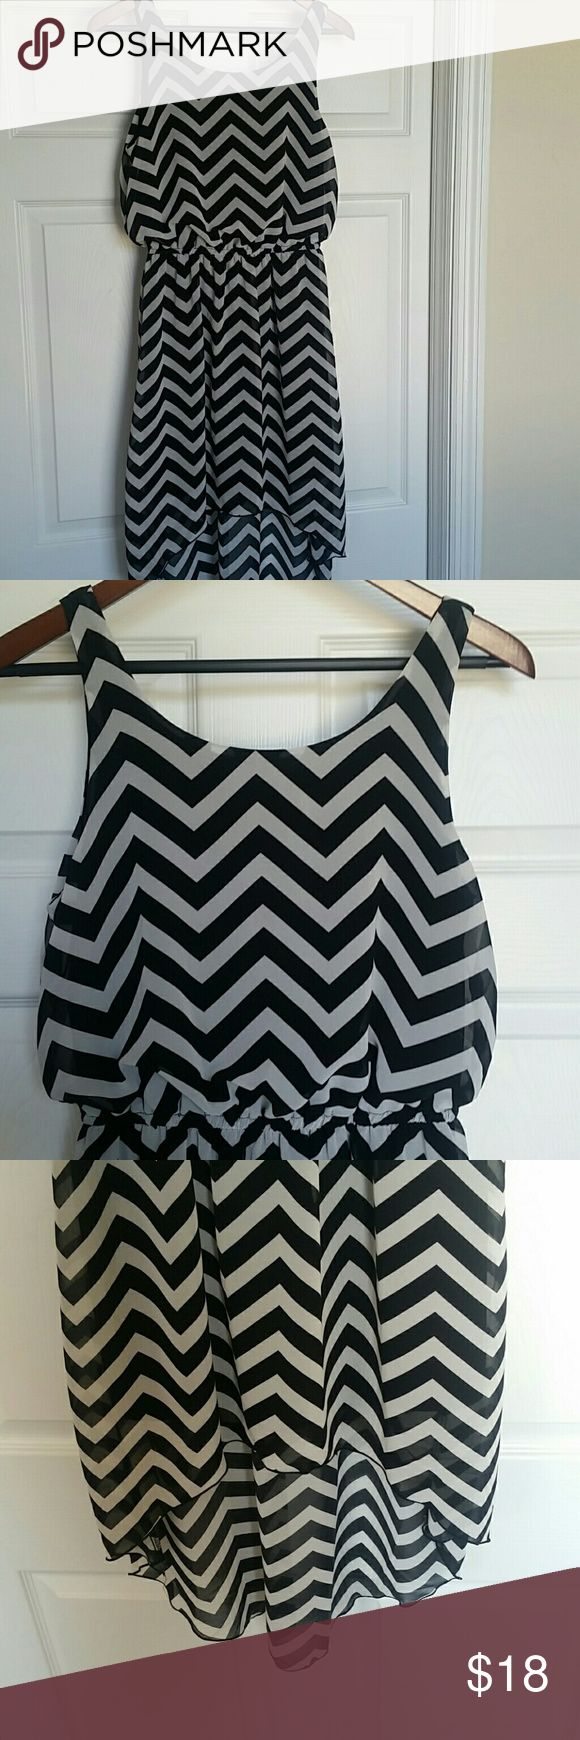 Chevron Print Hi Lo Bow Dress Worn once hi lo chevron print dress. Features an adorable bow in the back. Size small. Dresses